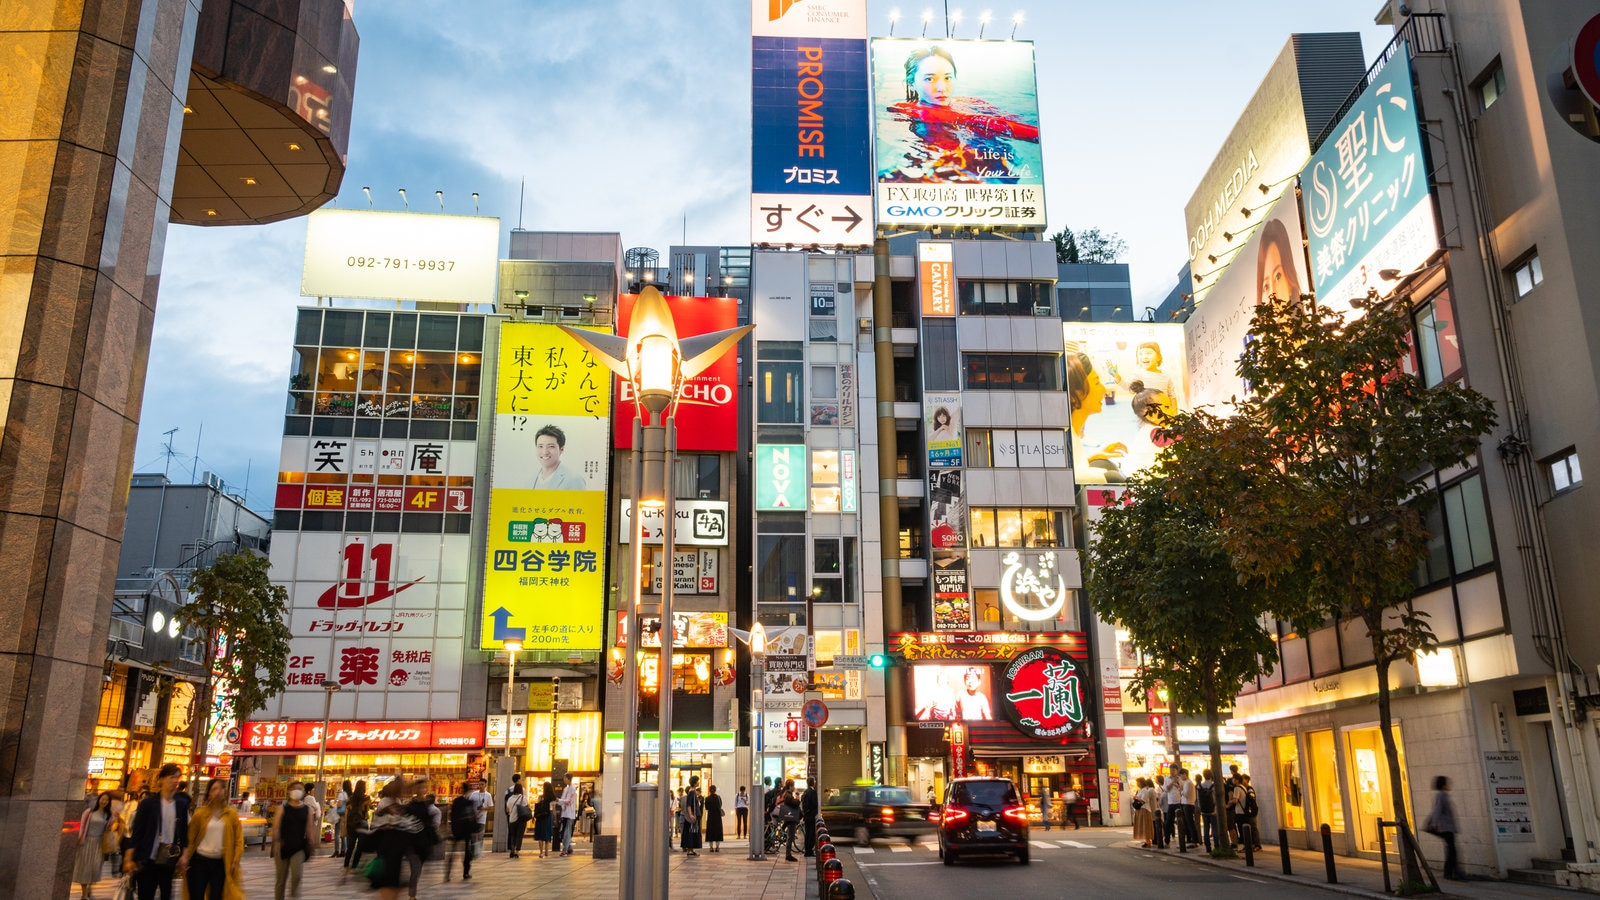 Tenjin which includes street scenes, a sunset and signage